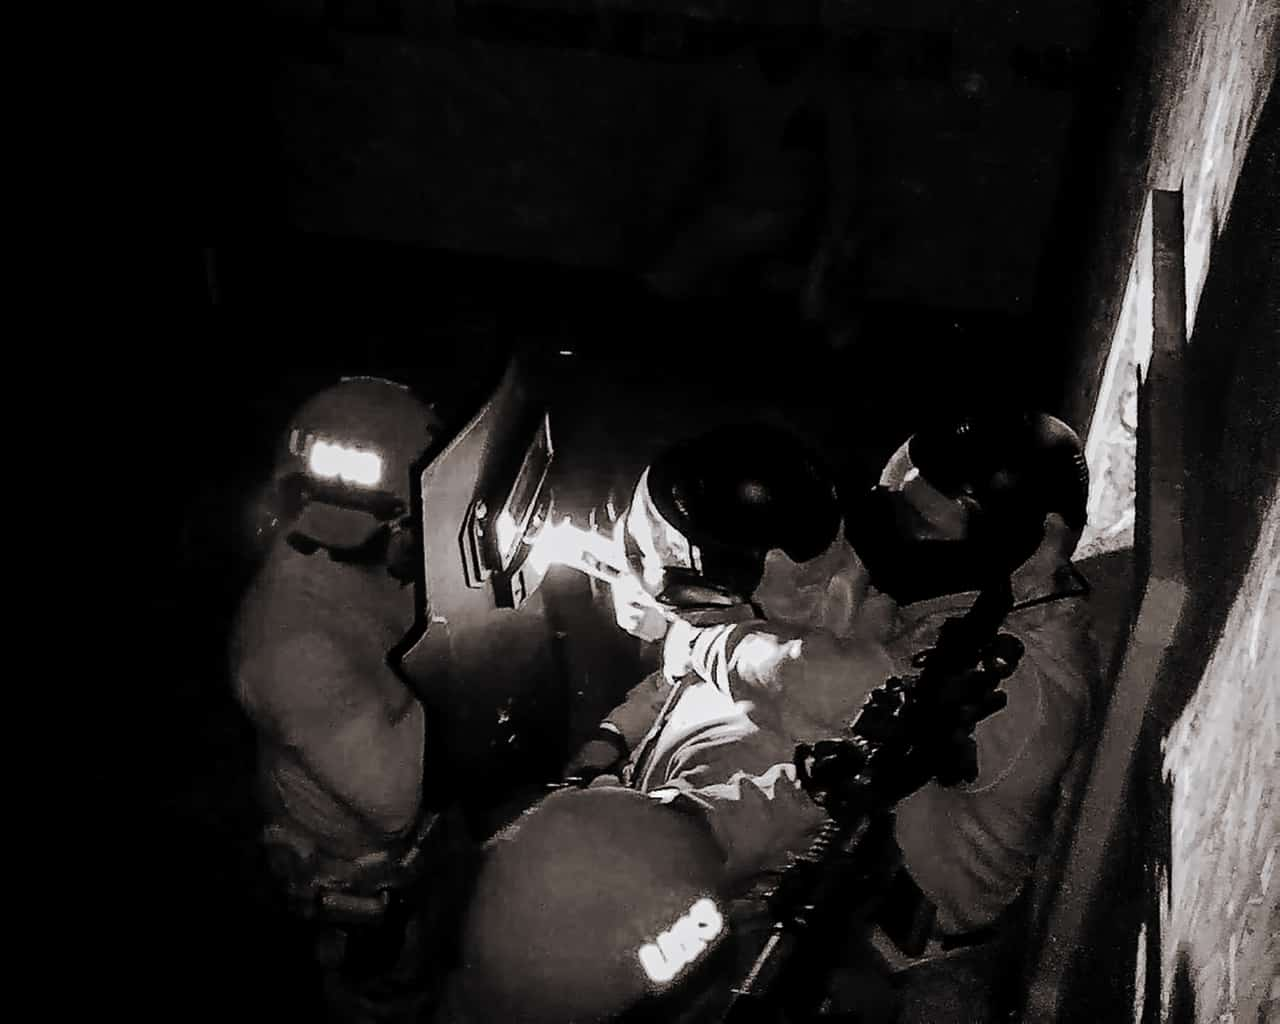 Hostage Rescue with low light entry principles